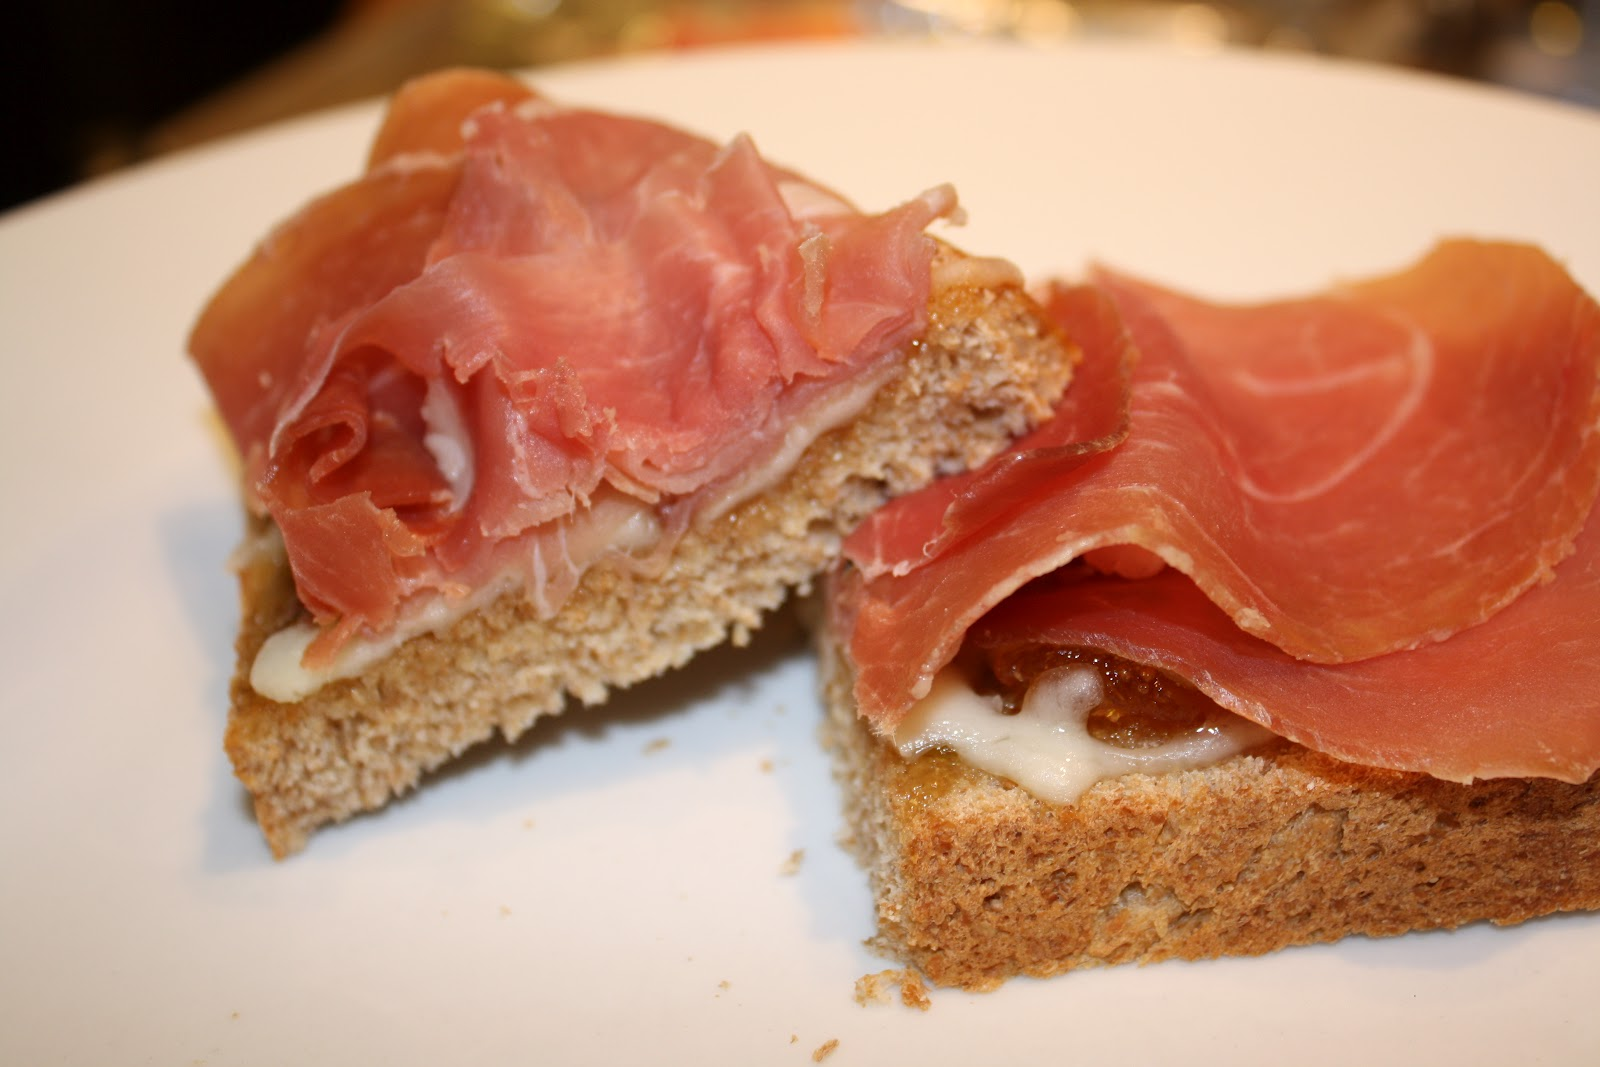 ... Dinner Happy Home: Remix: Prosciutto & Cheese Sandwich with Fig Jam